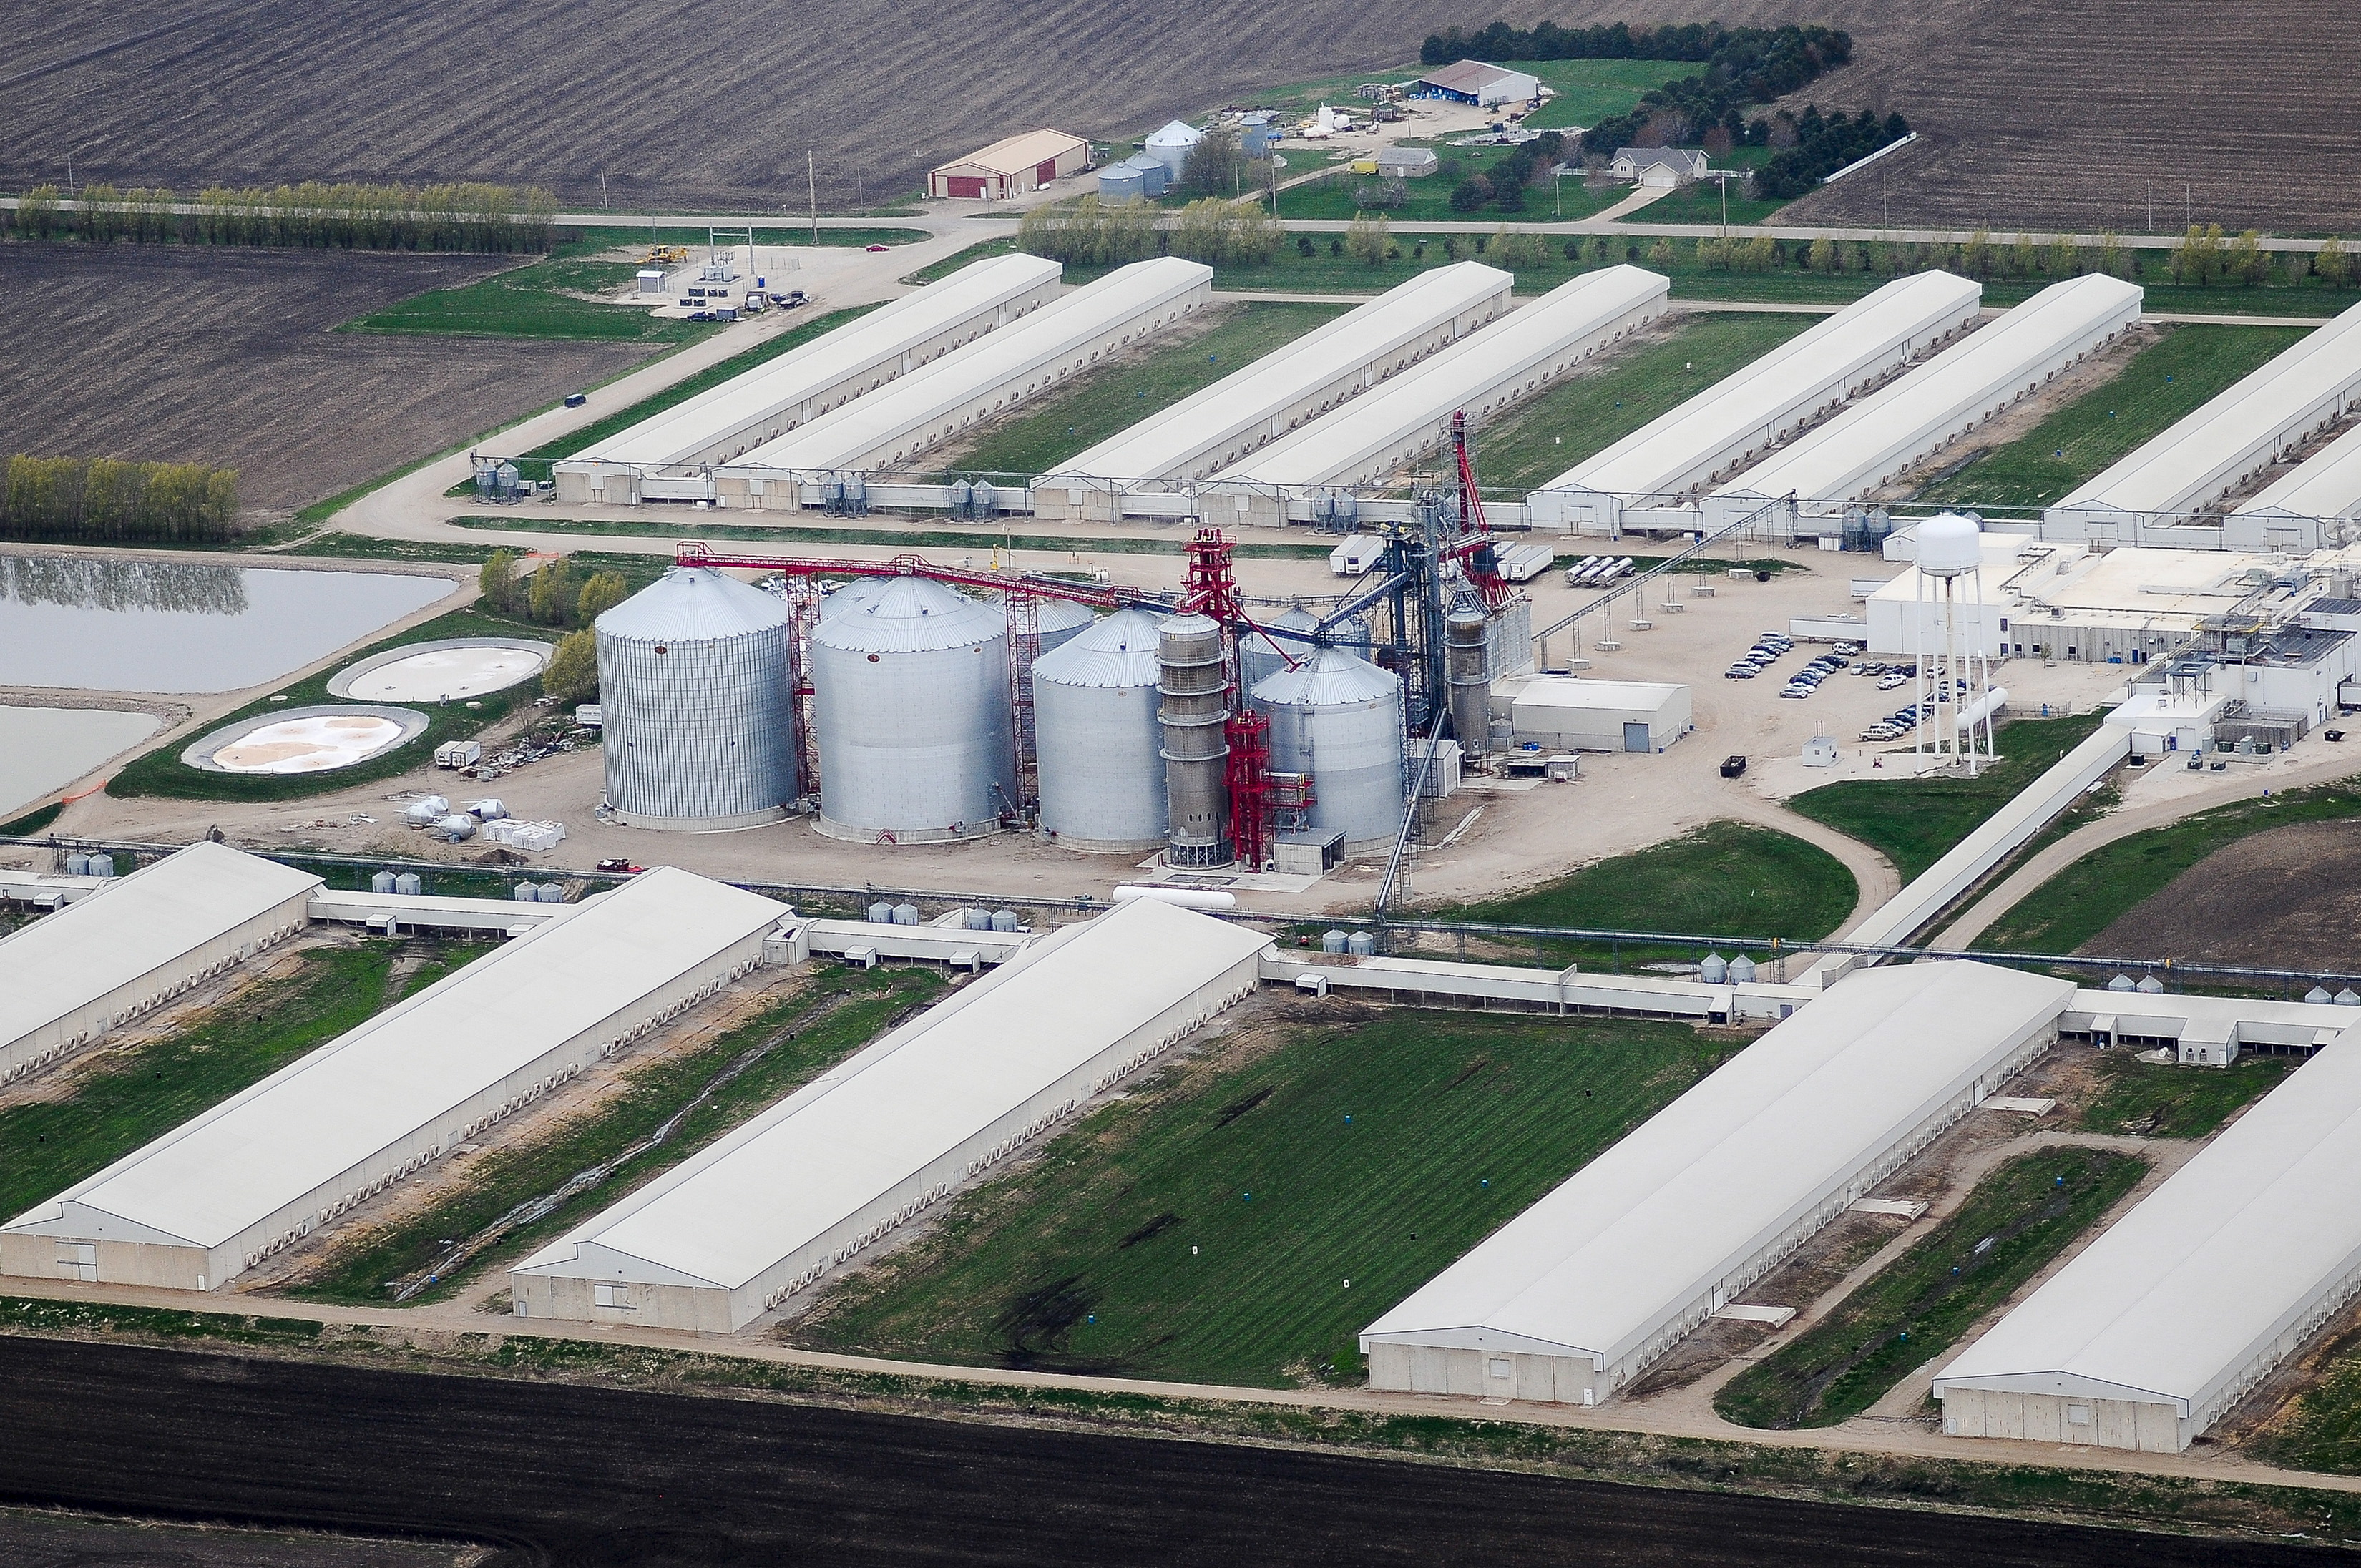 An egg-producing chicken farm run by Sunrise Farm is seen in Harris, Iowa on April 23, 2015. Iowa, the top U.S. egg-producing state, found a lethal strain of bird flu in millions of hens at an egg-laying facility on Monday, the worst case so far in a national outbreak that prompted Wisconsin to declare a state of emergency. The infected Iowa birds were being raised near the city of Harris by Sunrise Farms, an affiliate of Sonstegard Foods Company, the company said.